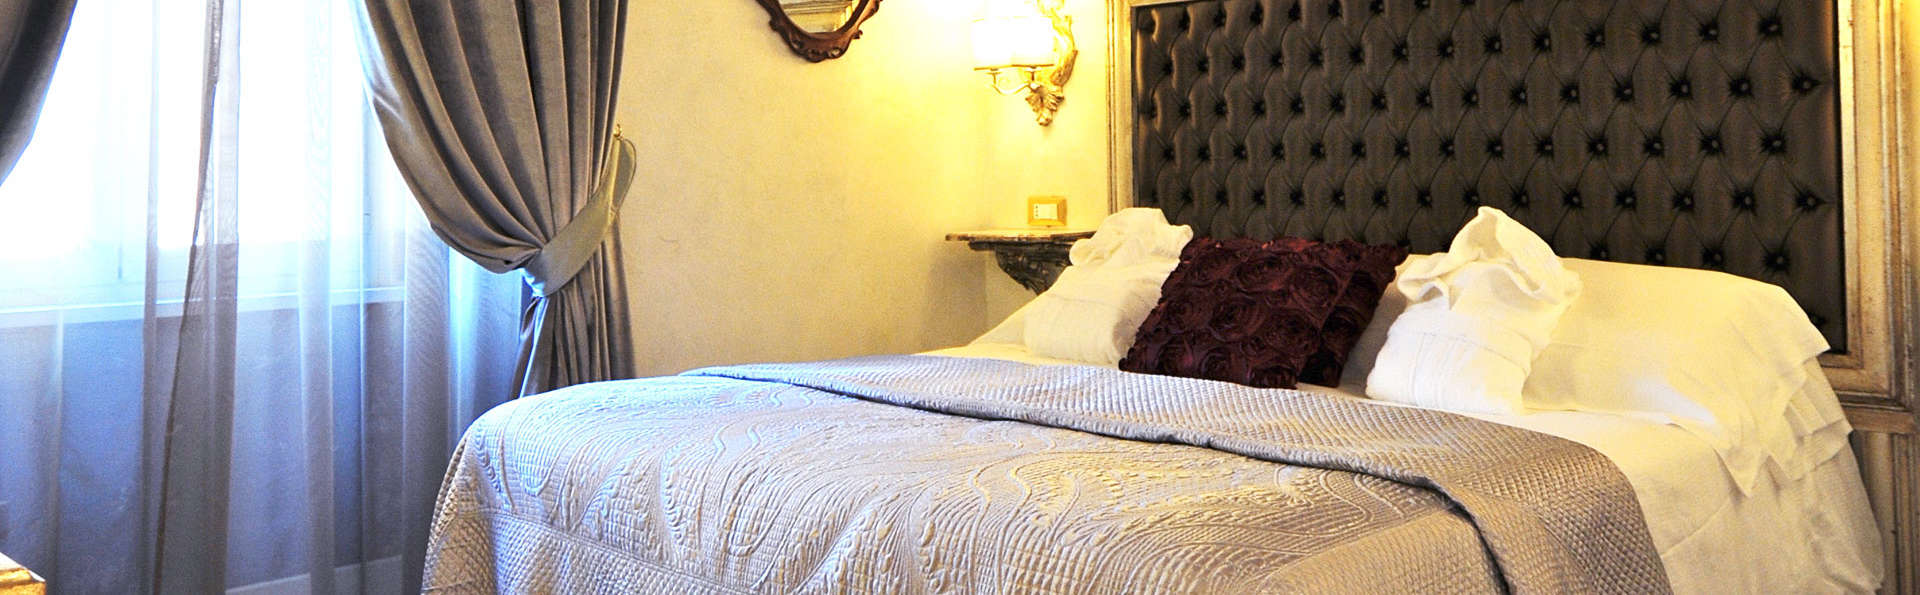 Hotel Romanico Palace - EDIT_room1.jpg